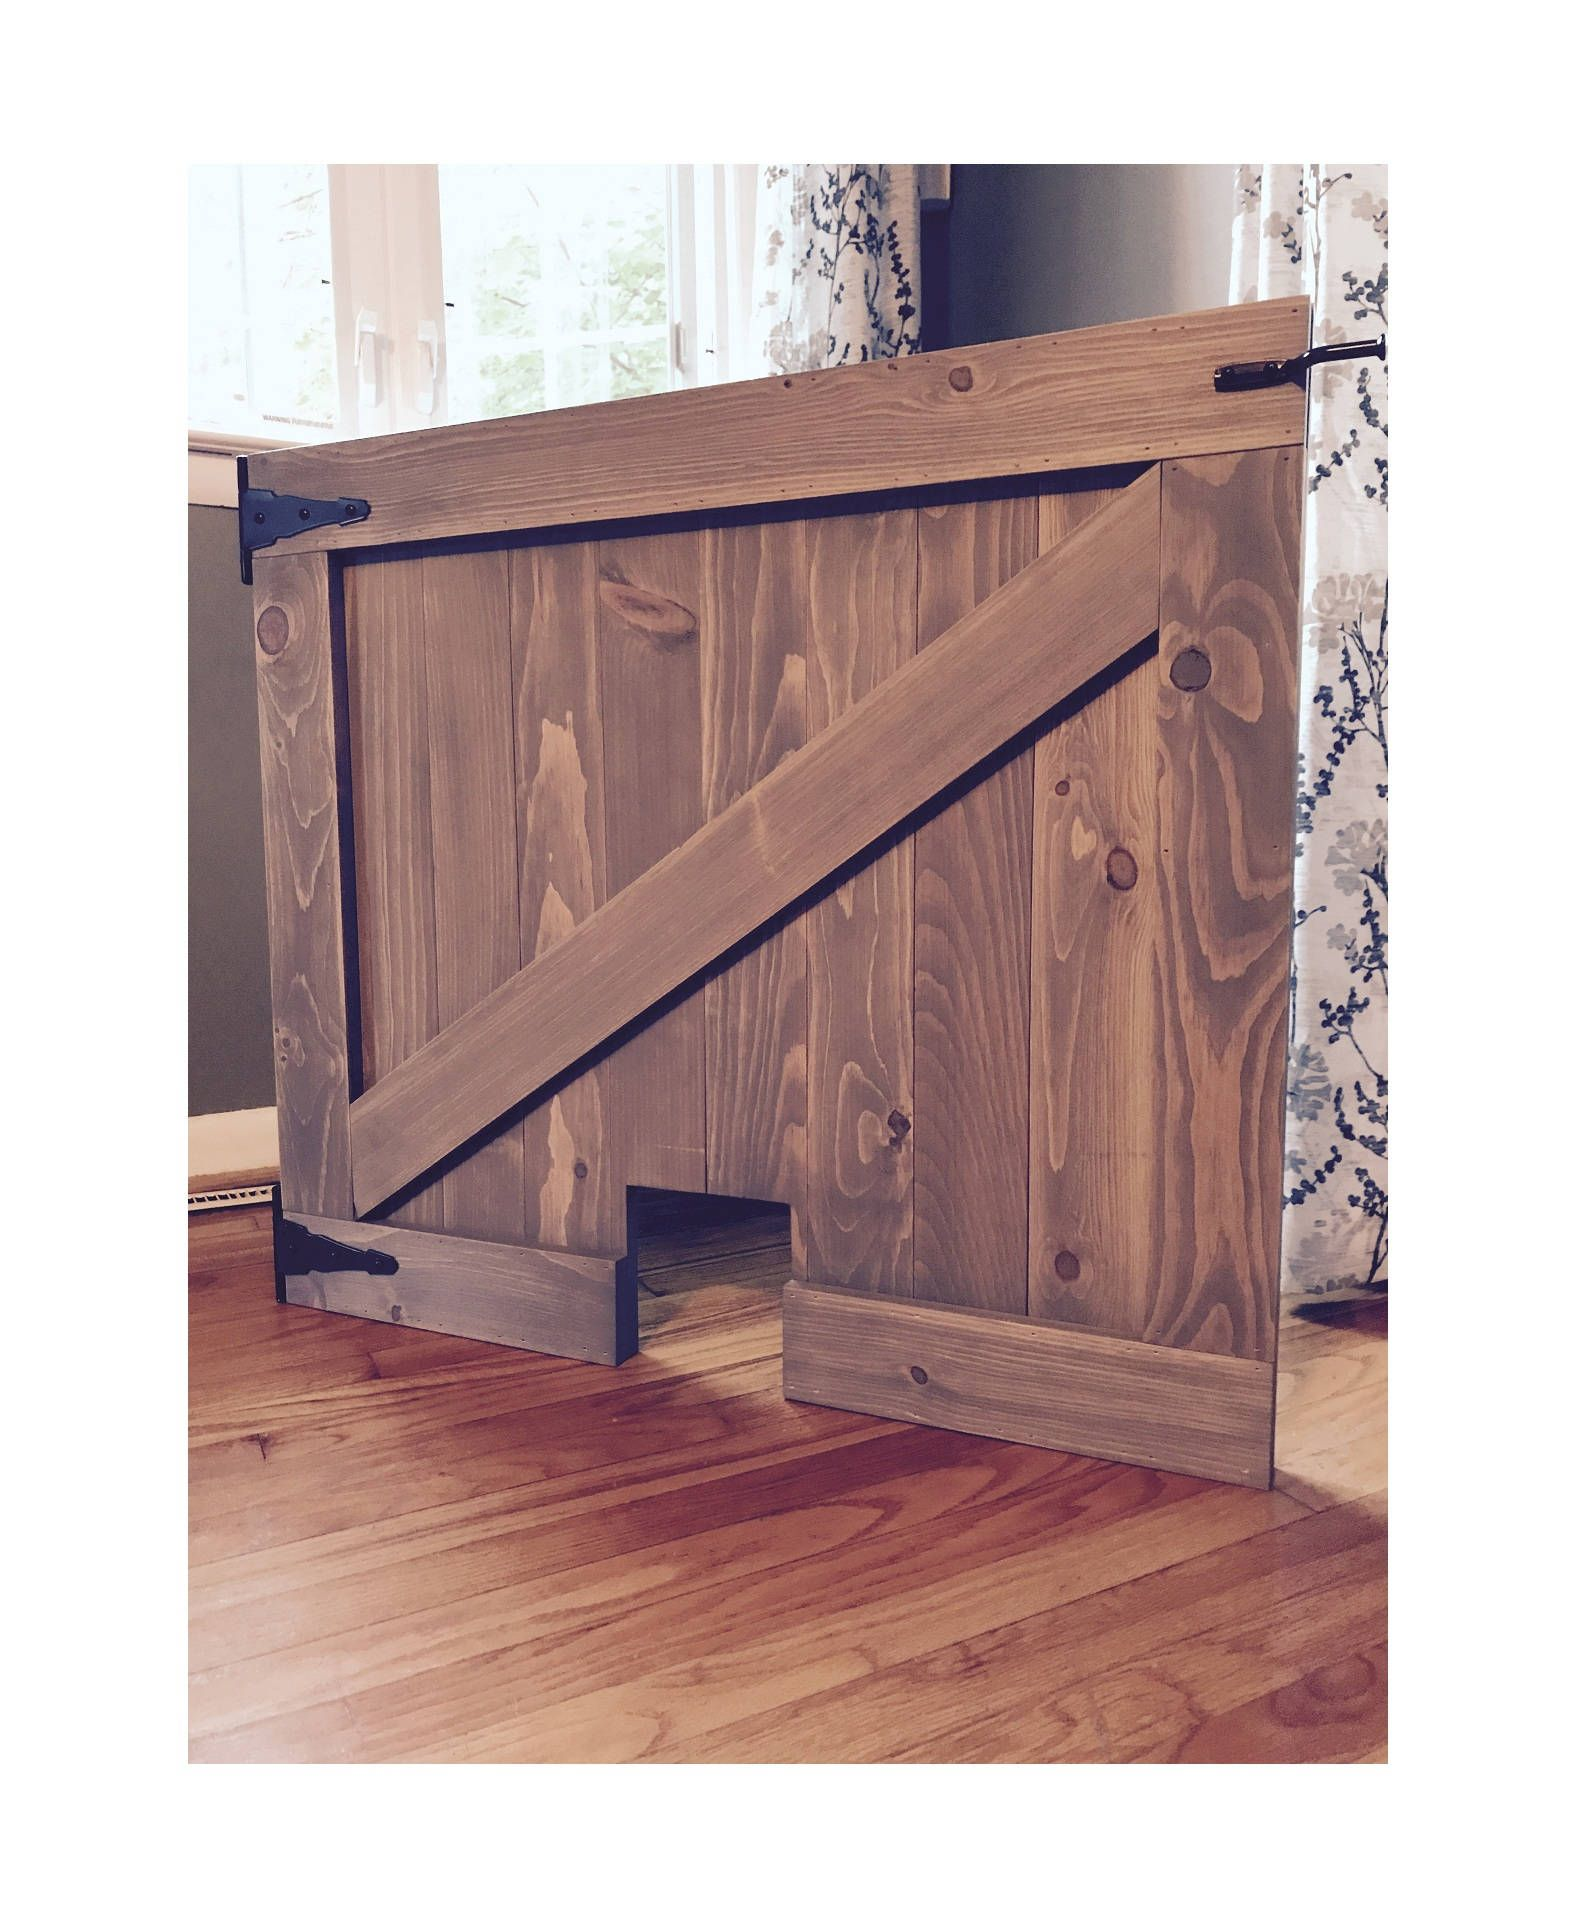 Pet Security Gate Barn Door Baby Gate Custom Dog Gate Etsy Barn Door Baby Gate Baby Gates Wooden Baby Gates